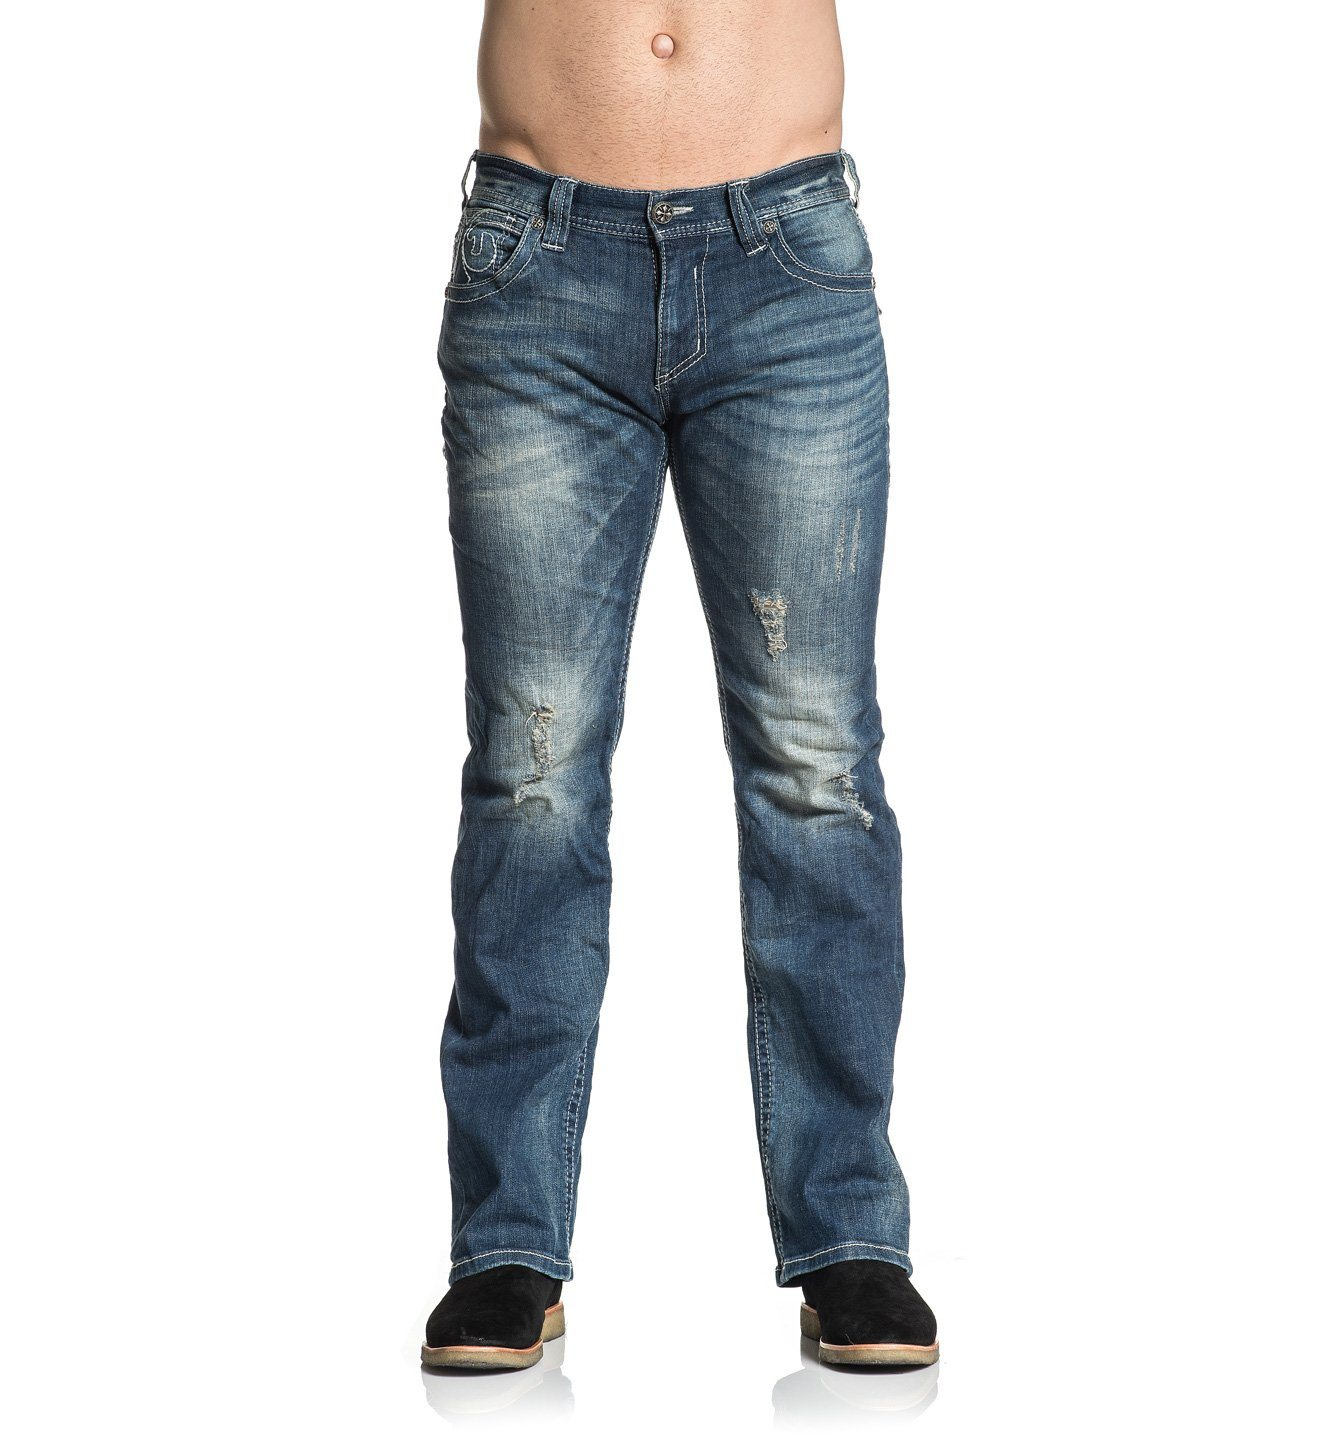 Cooper Republic - Mens Denim Bottoms - Affliction Clothing